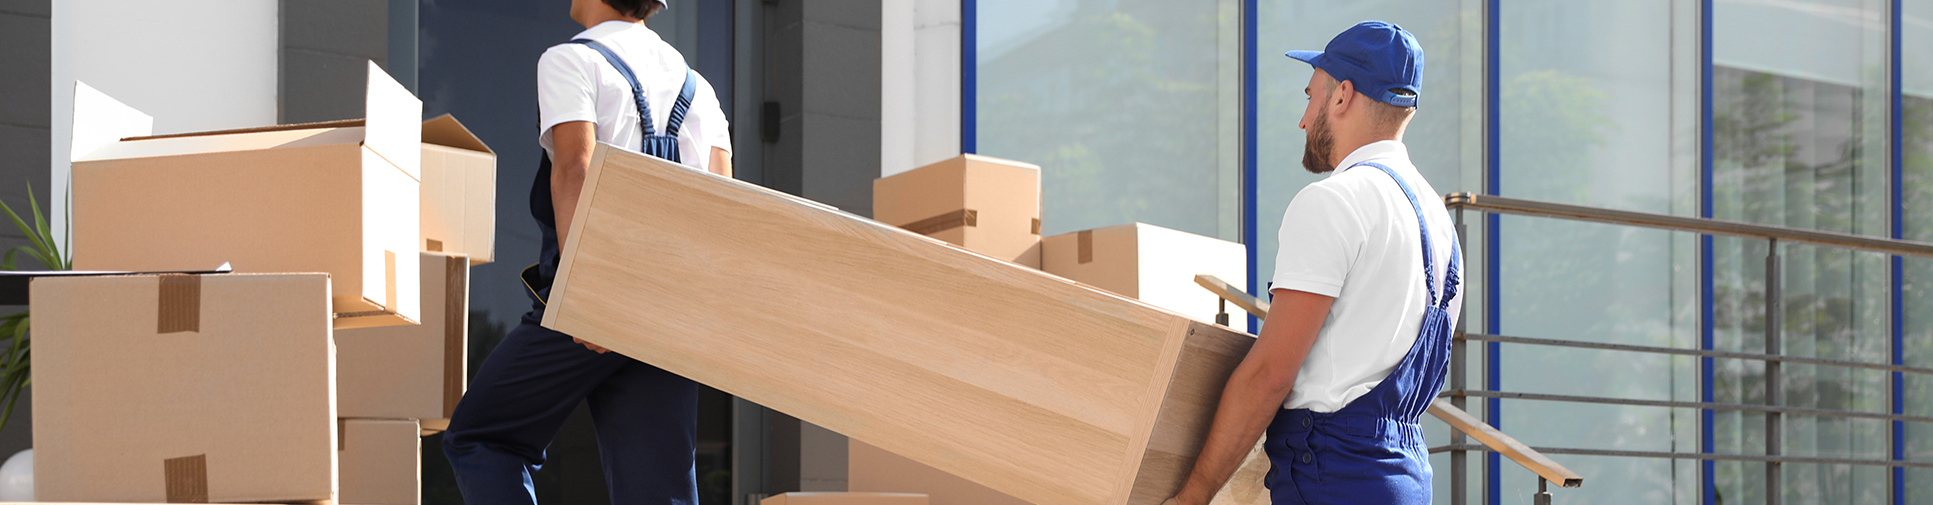 Carolina Office Solution delivery man delivering office furniture